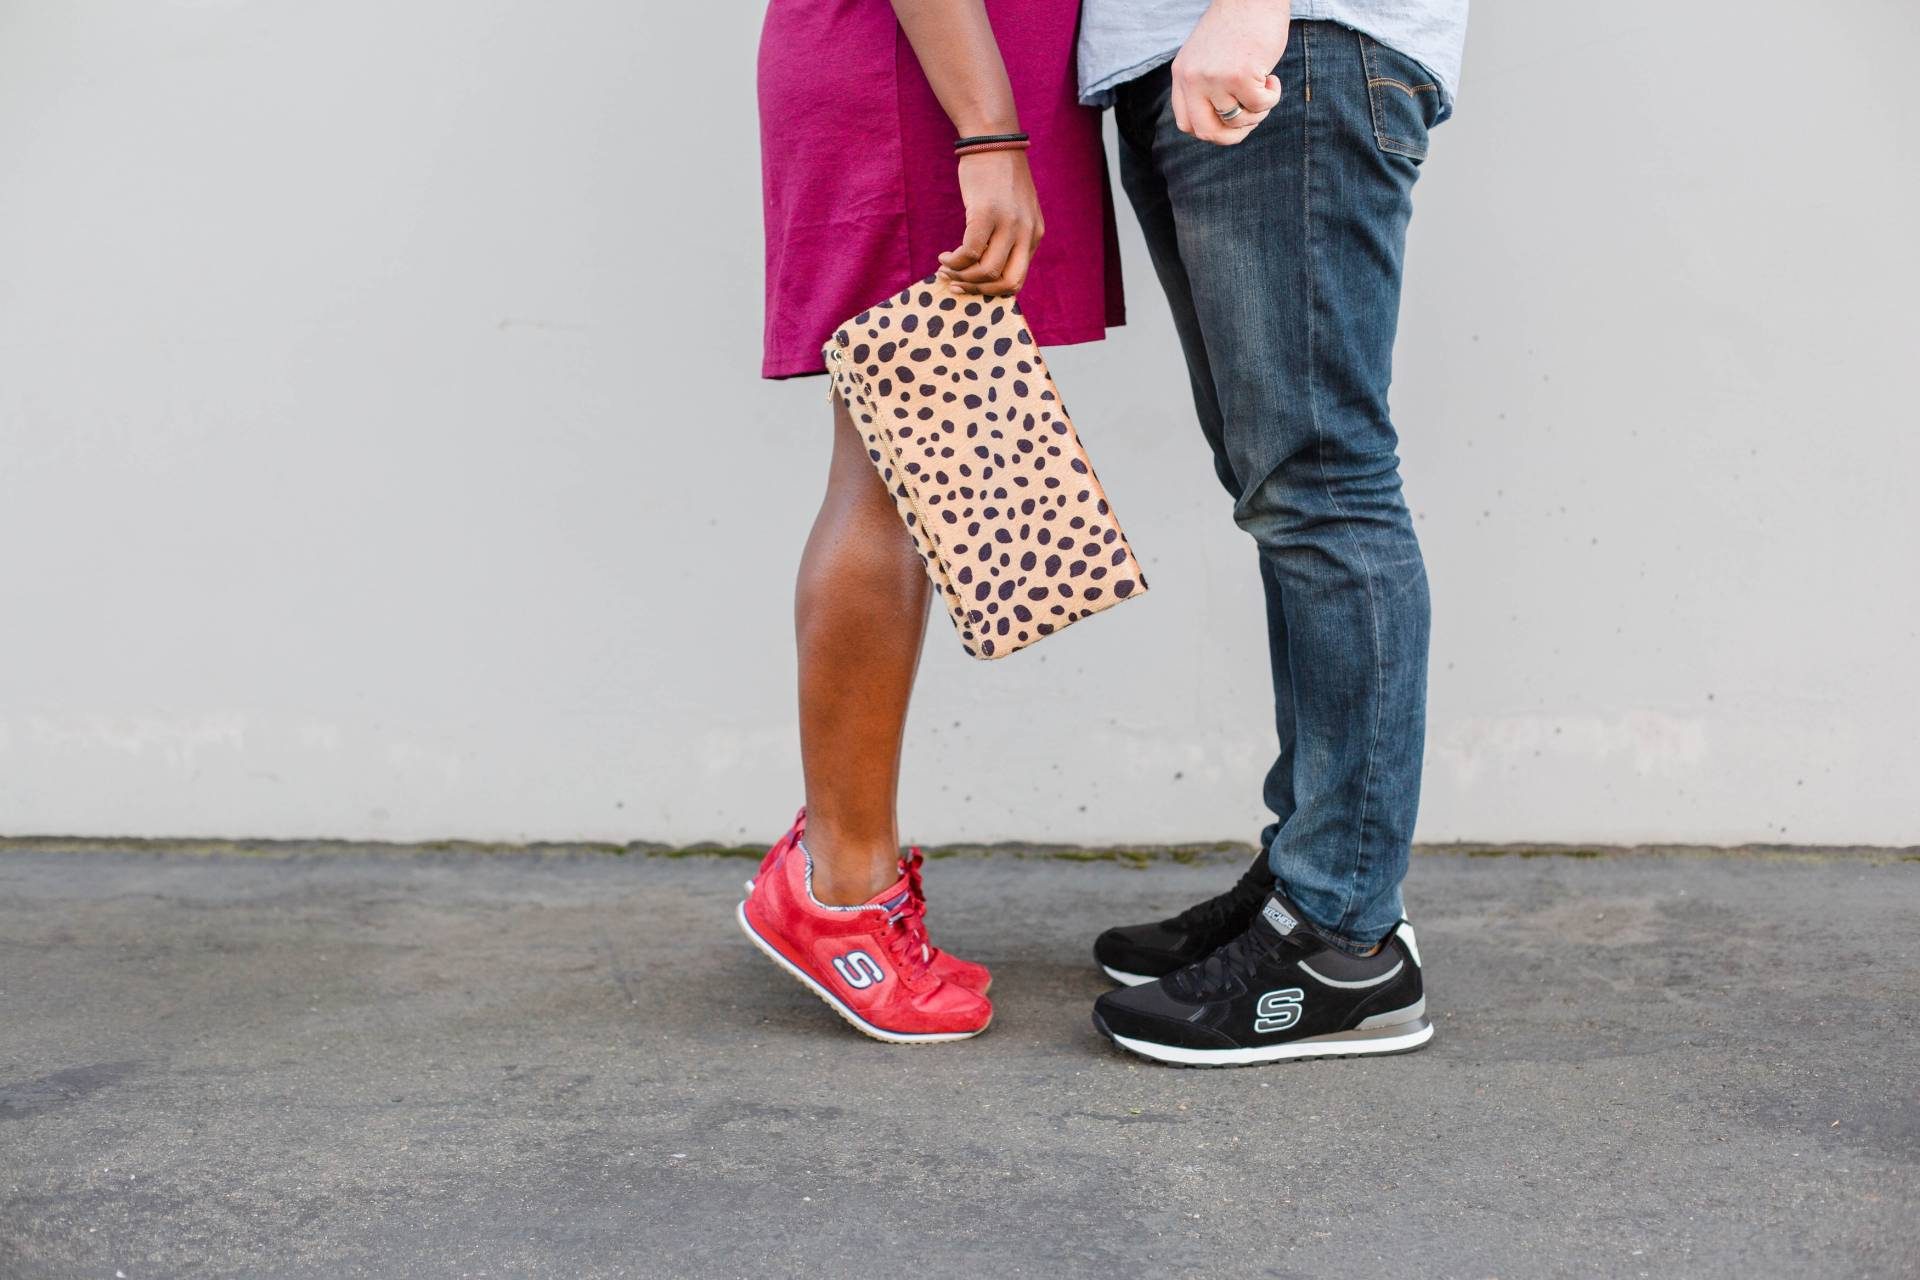 skechers- couples